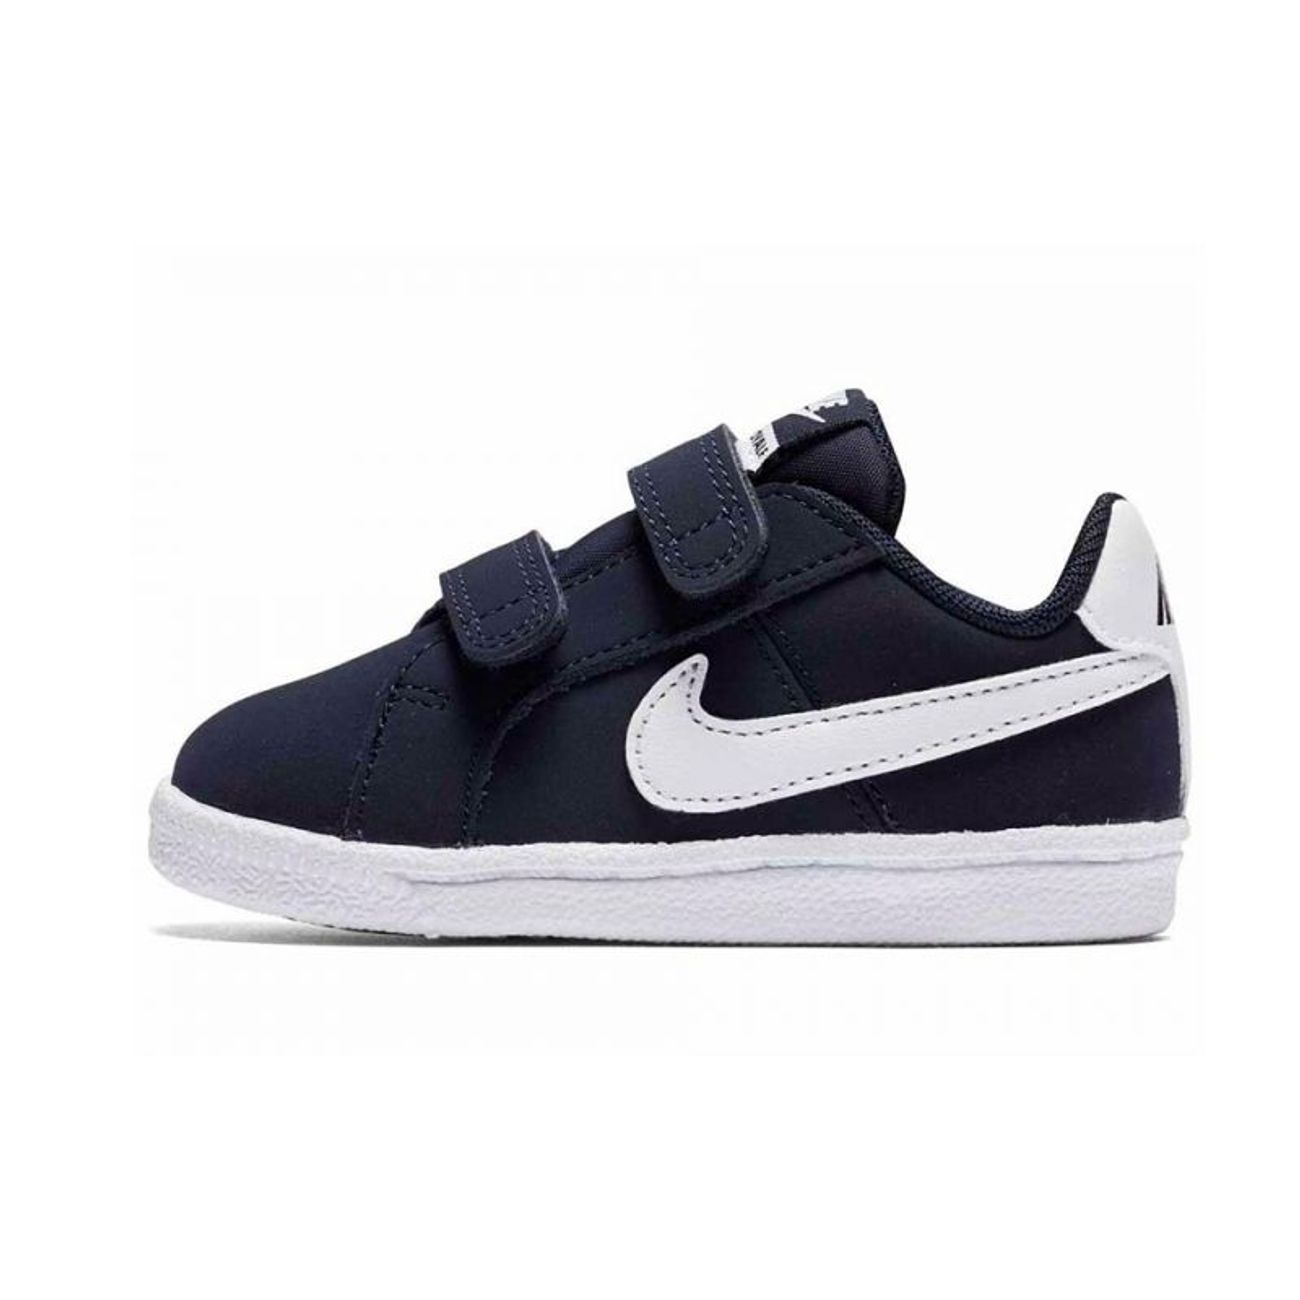 Junior Nike Royale Court Noir Ni83357 Padel Adulte 400 Blanc shQdtCBrx